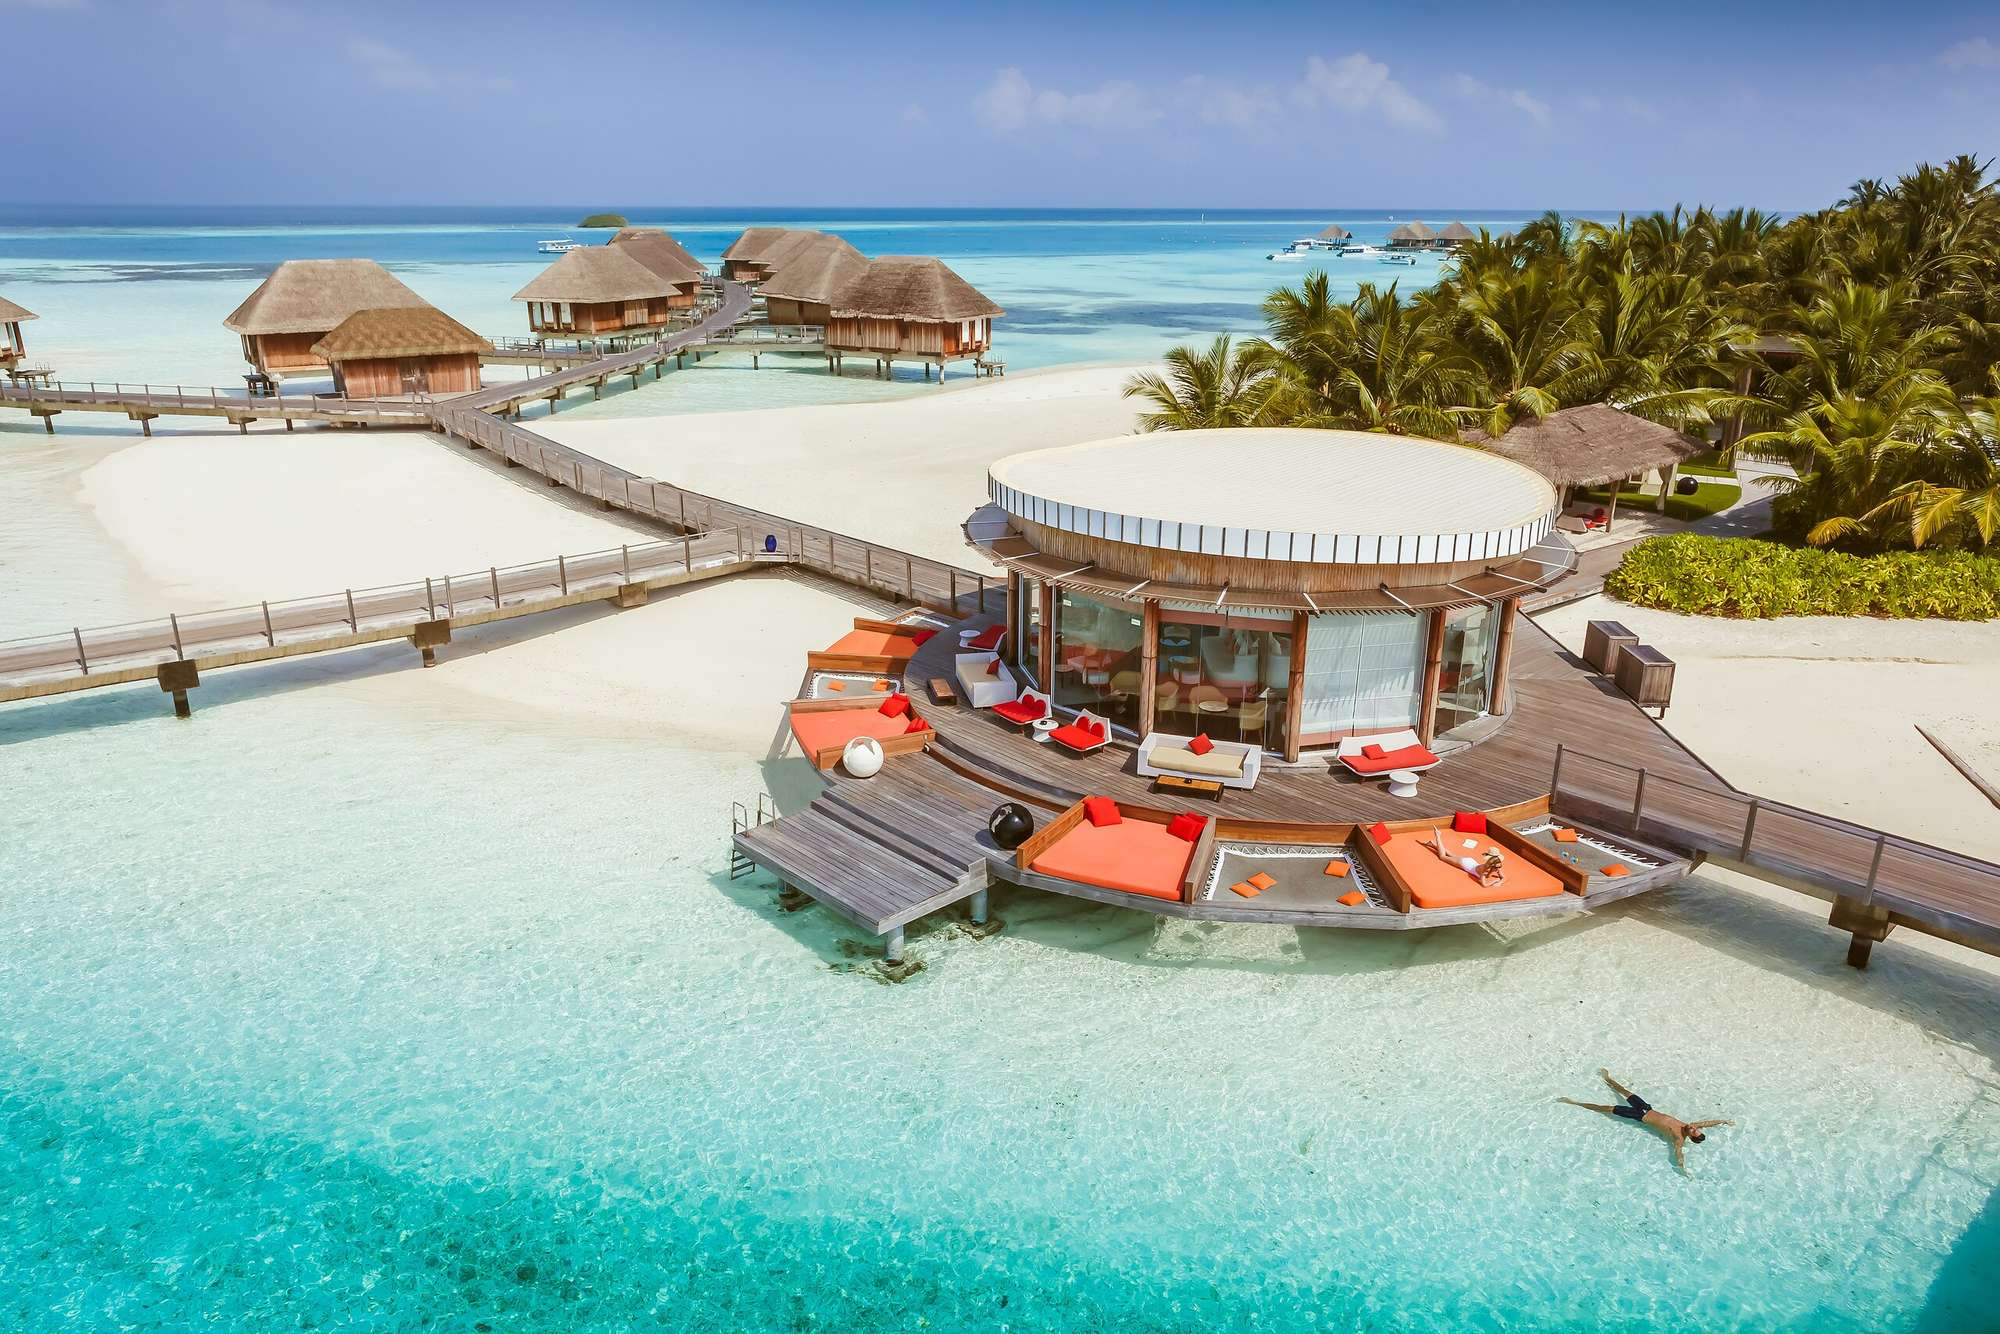 club-med-kani-maldives2